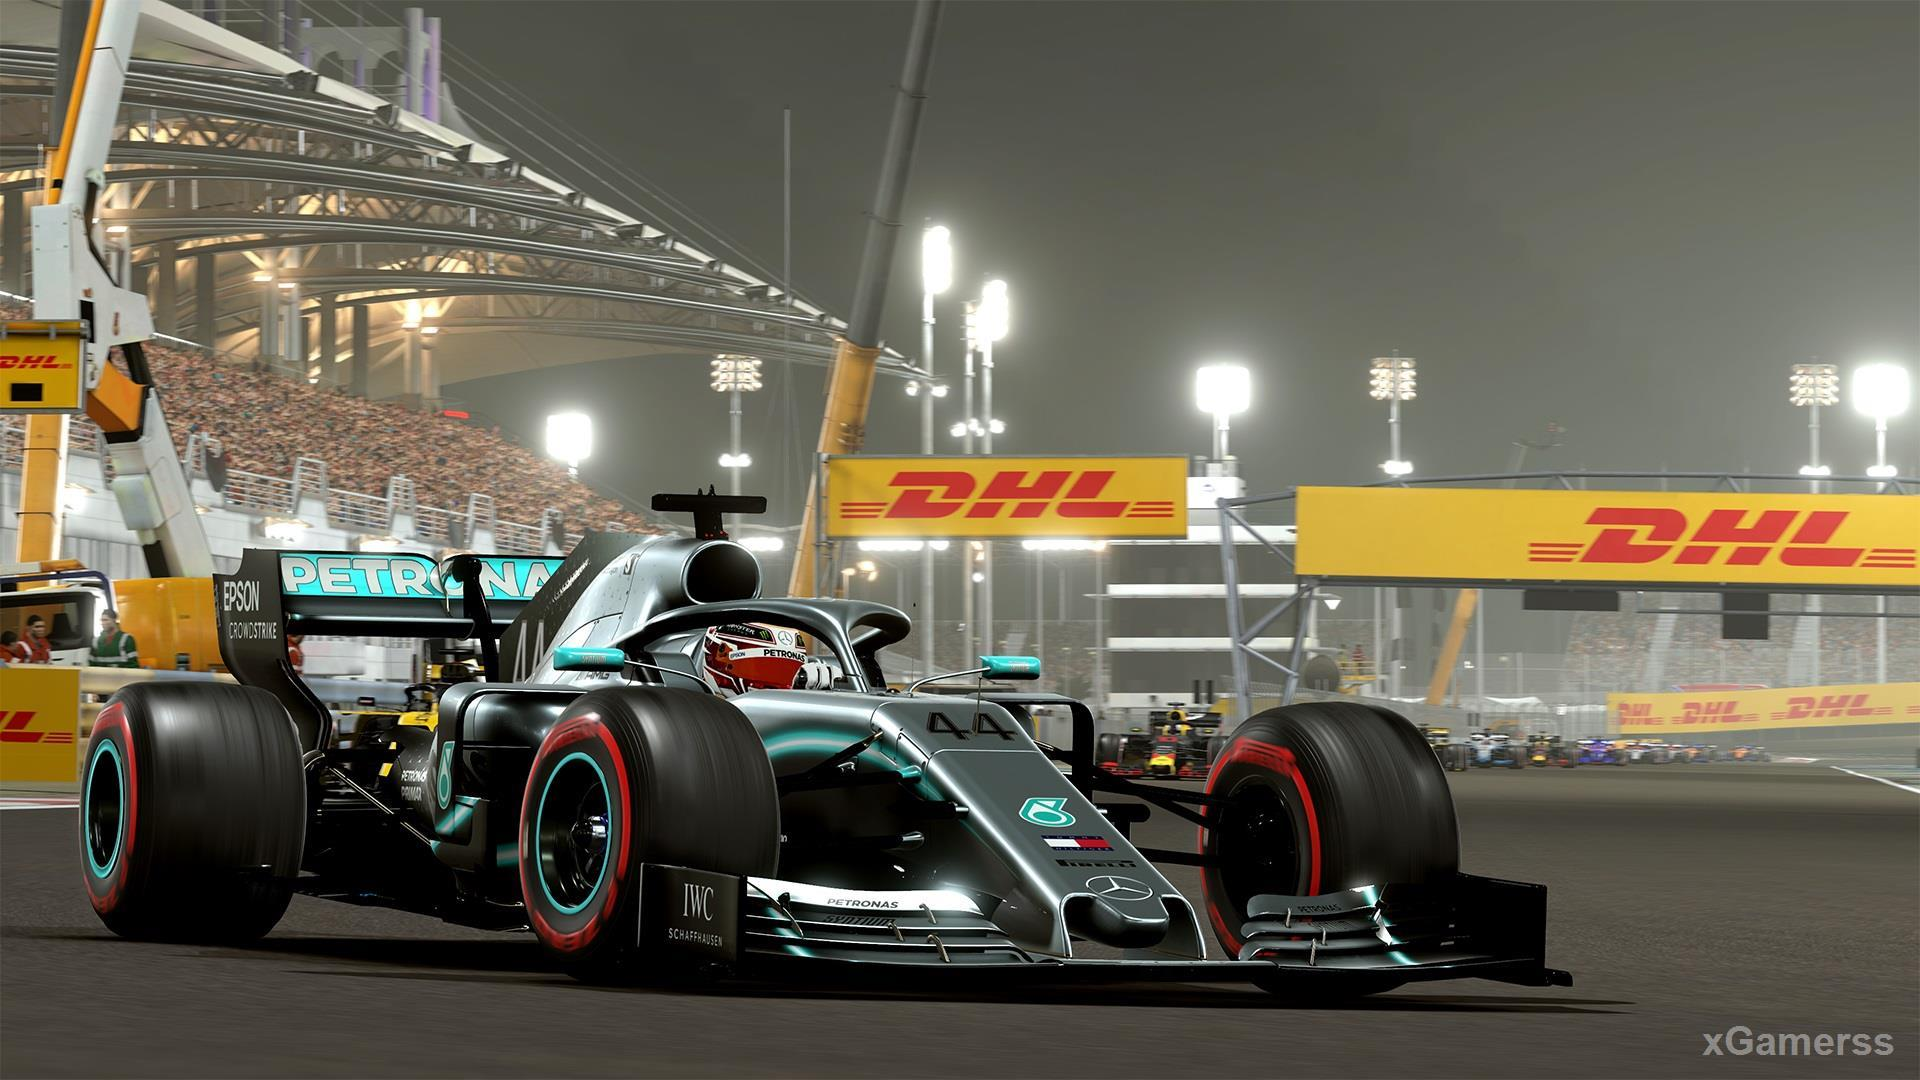 F1 2019 - one of the best Simulator Racing Game